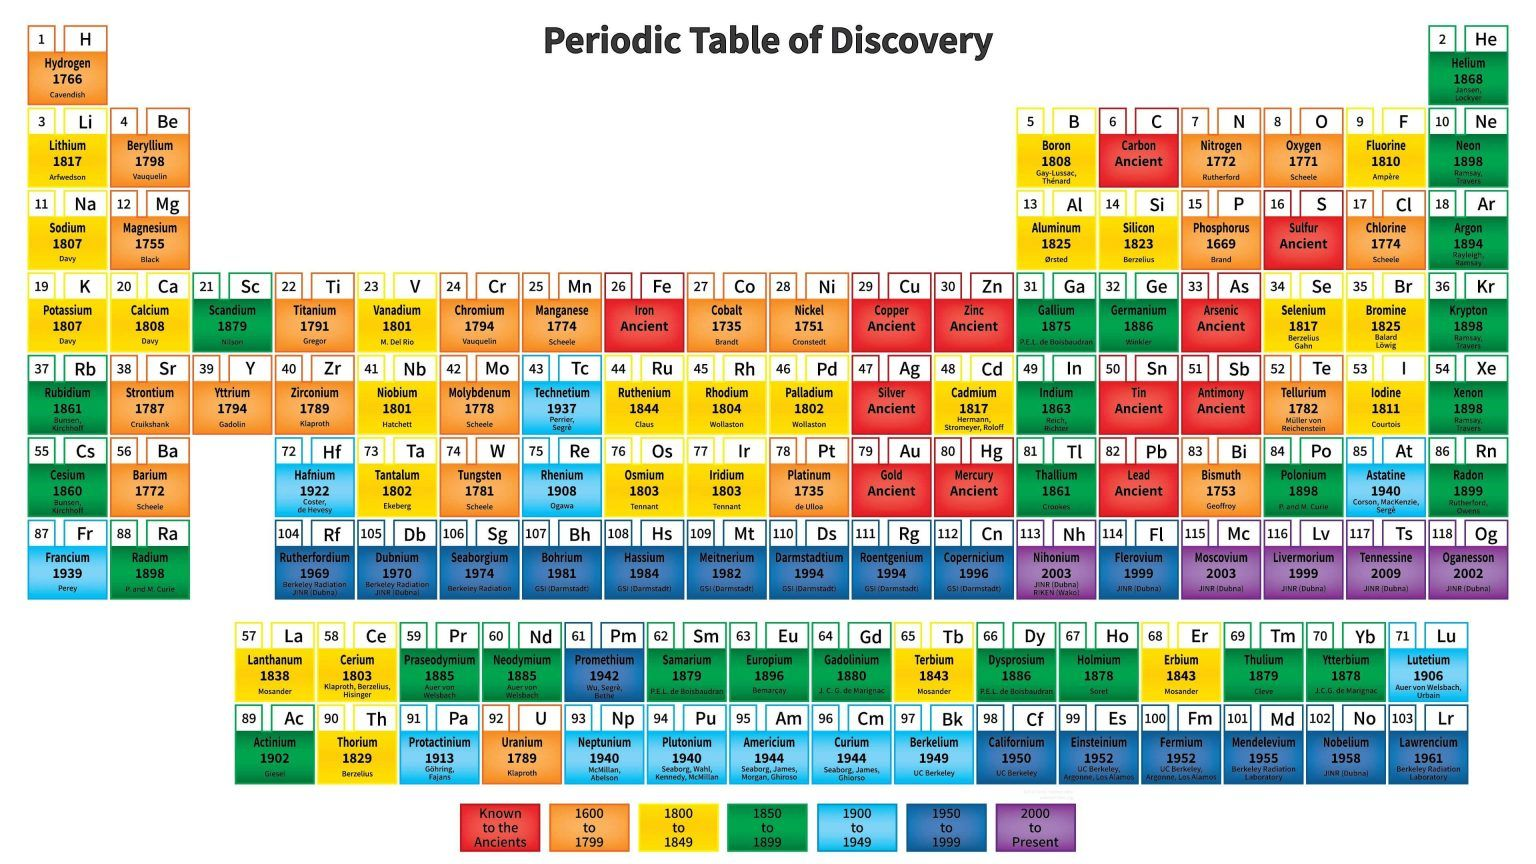 How was the Periodic Chart of Elements Discovered by